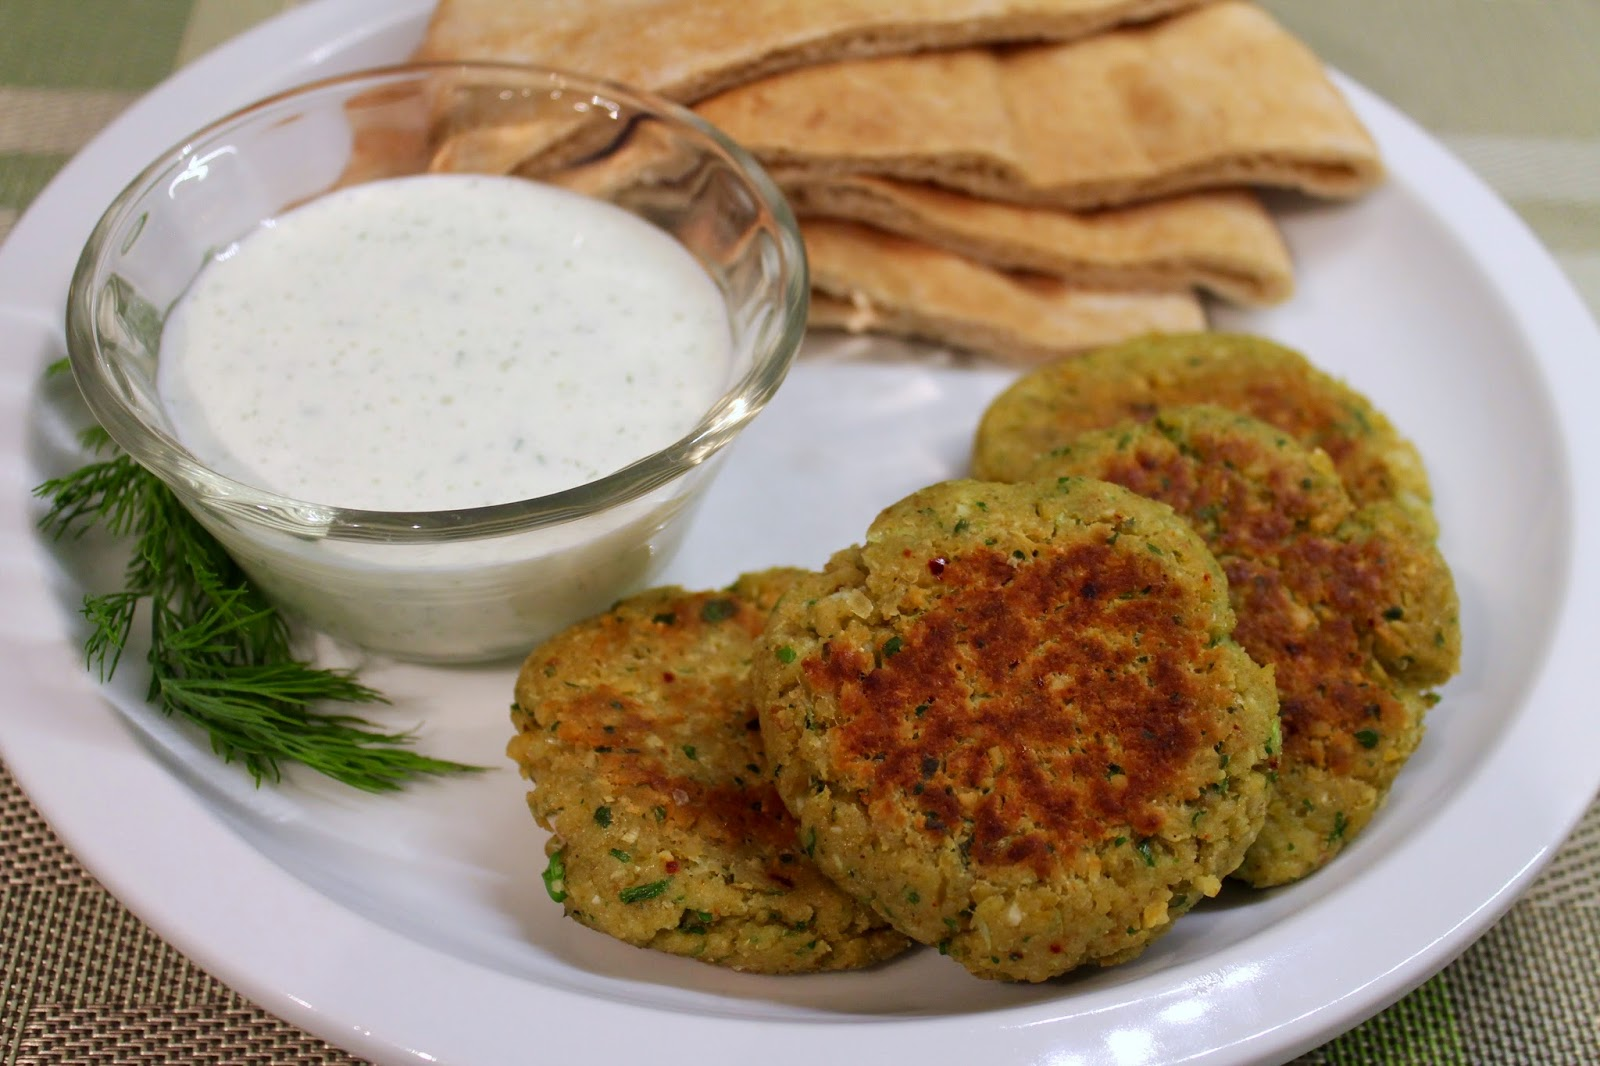 Mediterranean Chickpea Patties with Tzatziki Sauce